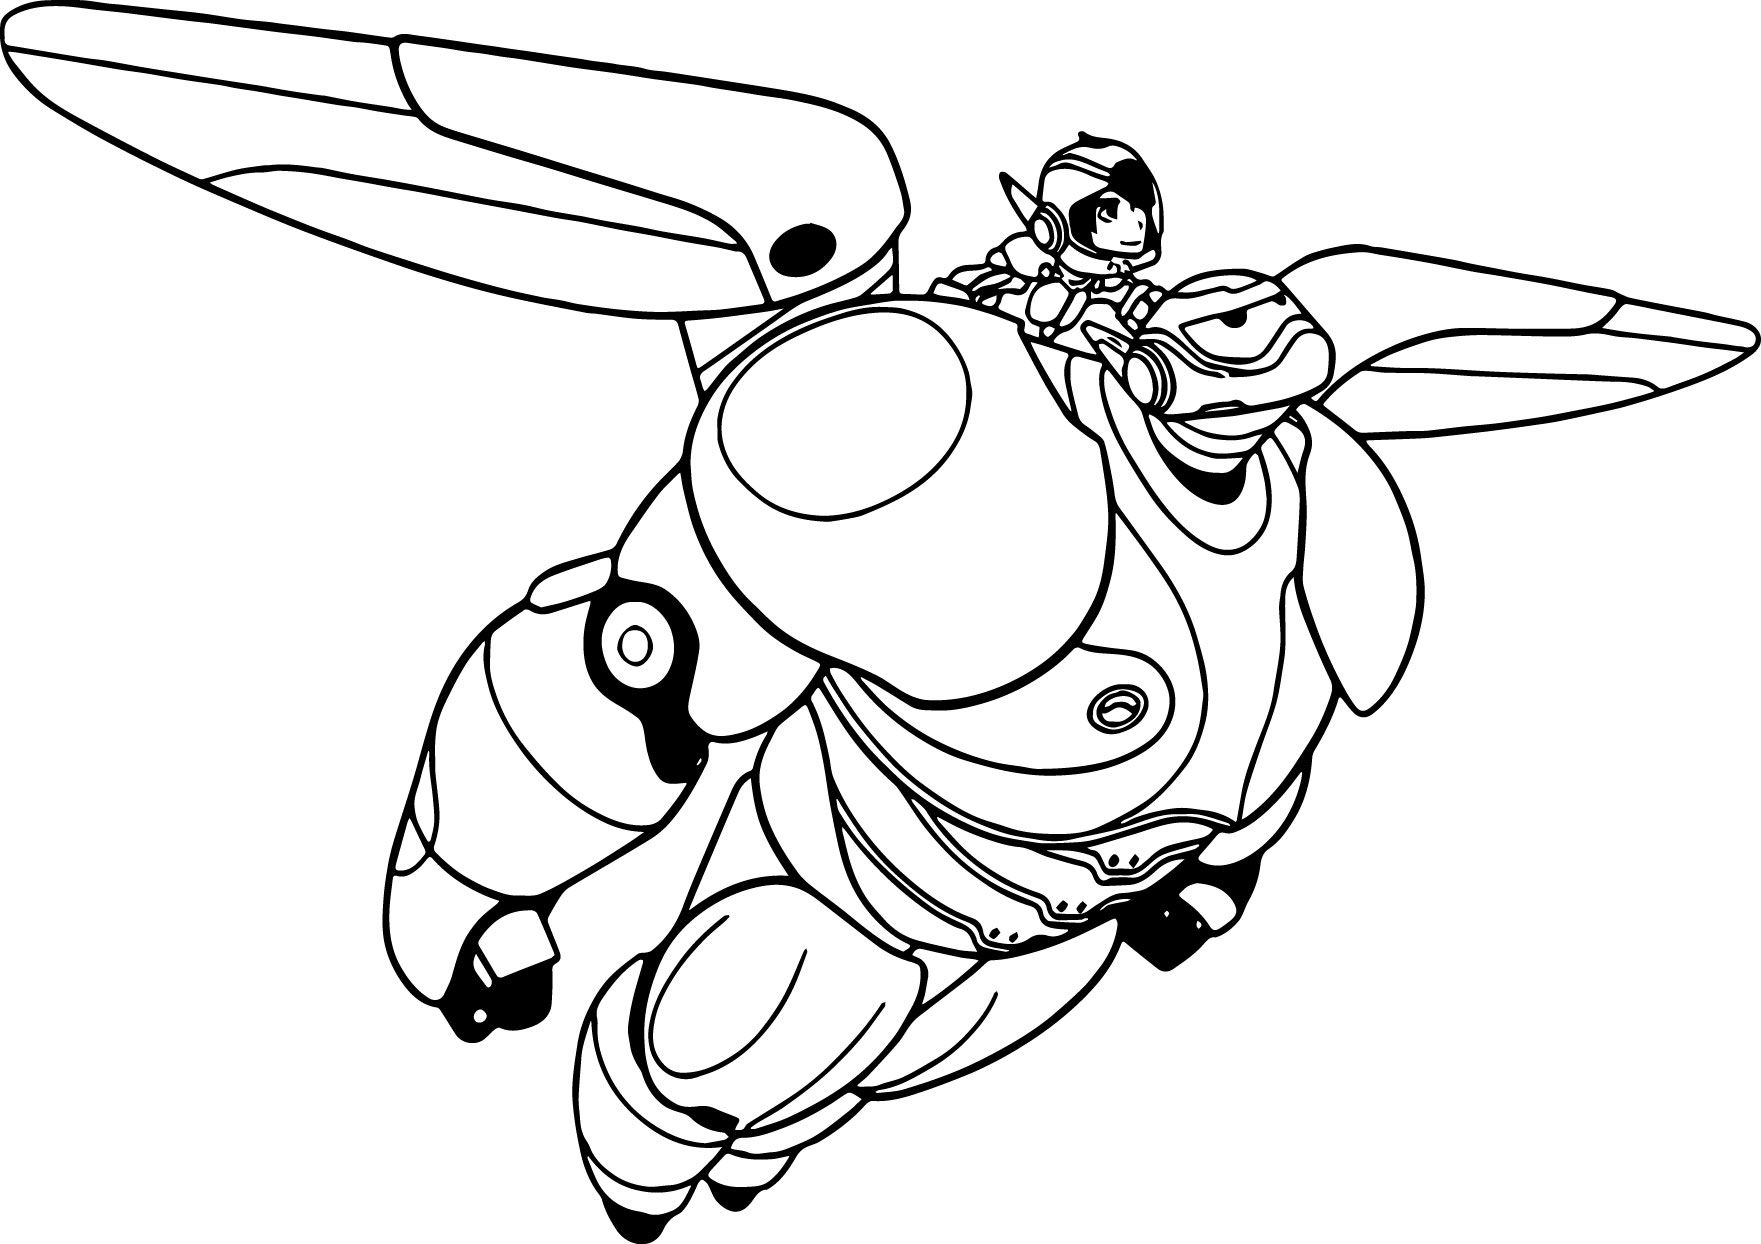 Cool Big Hero 6 Characters Baymax Hiro Coloring Page Big Hero 6